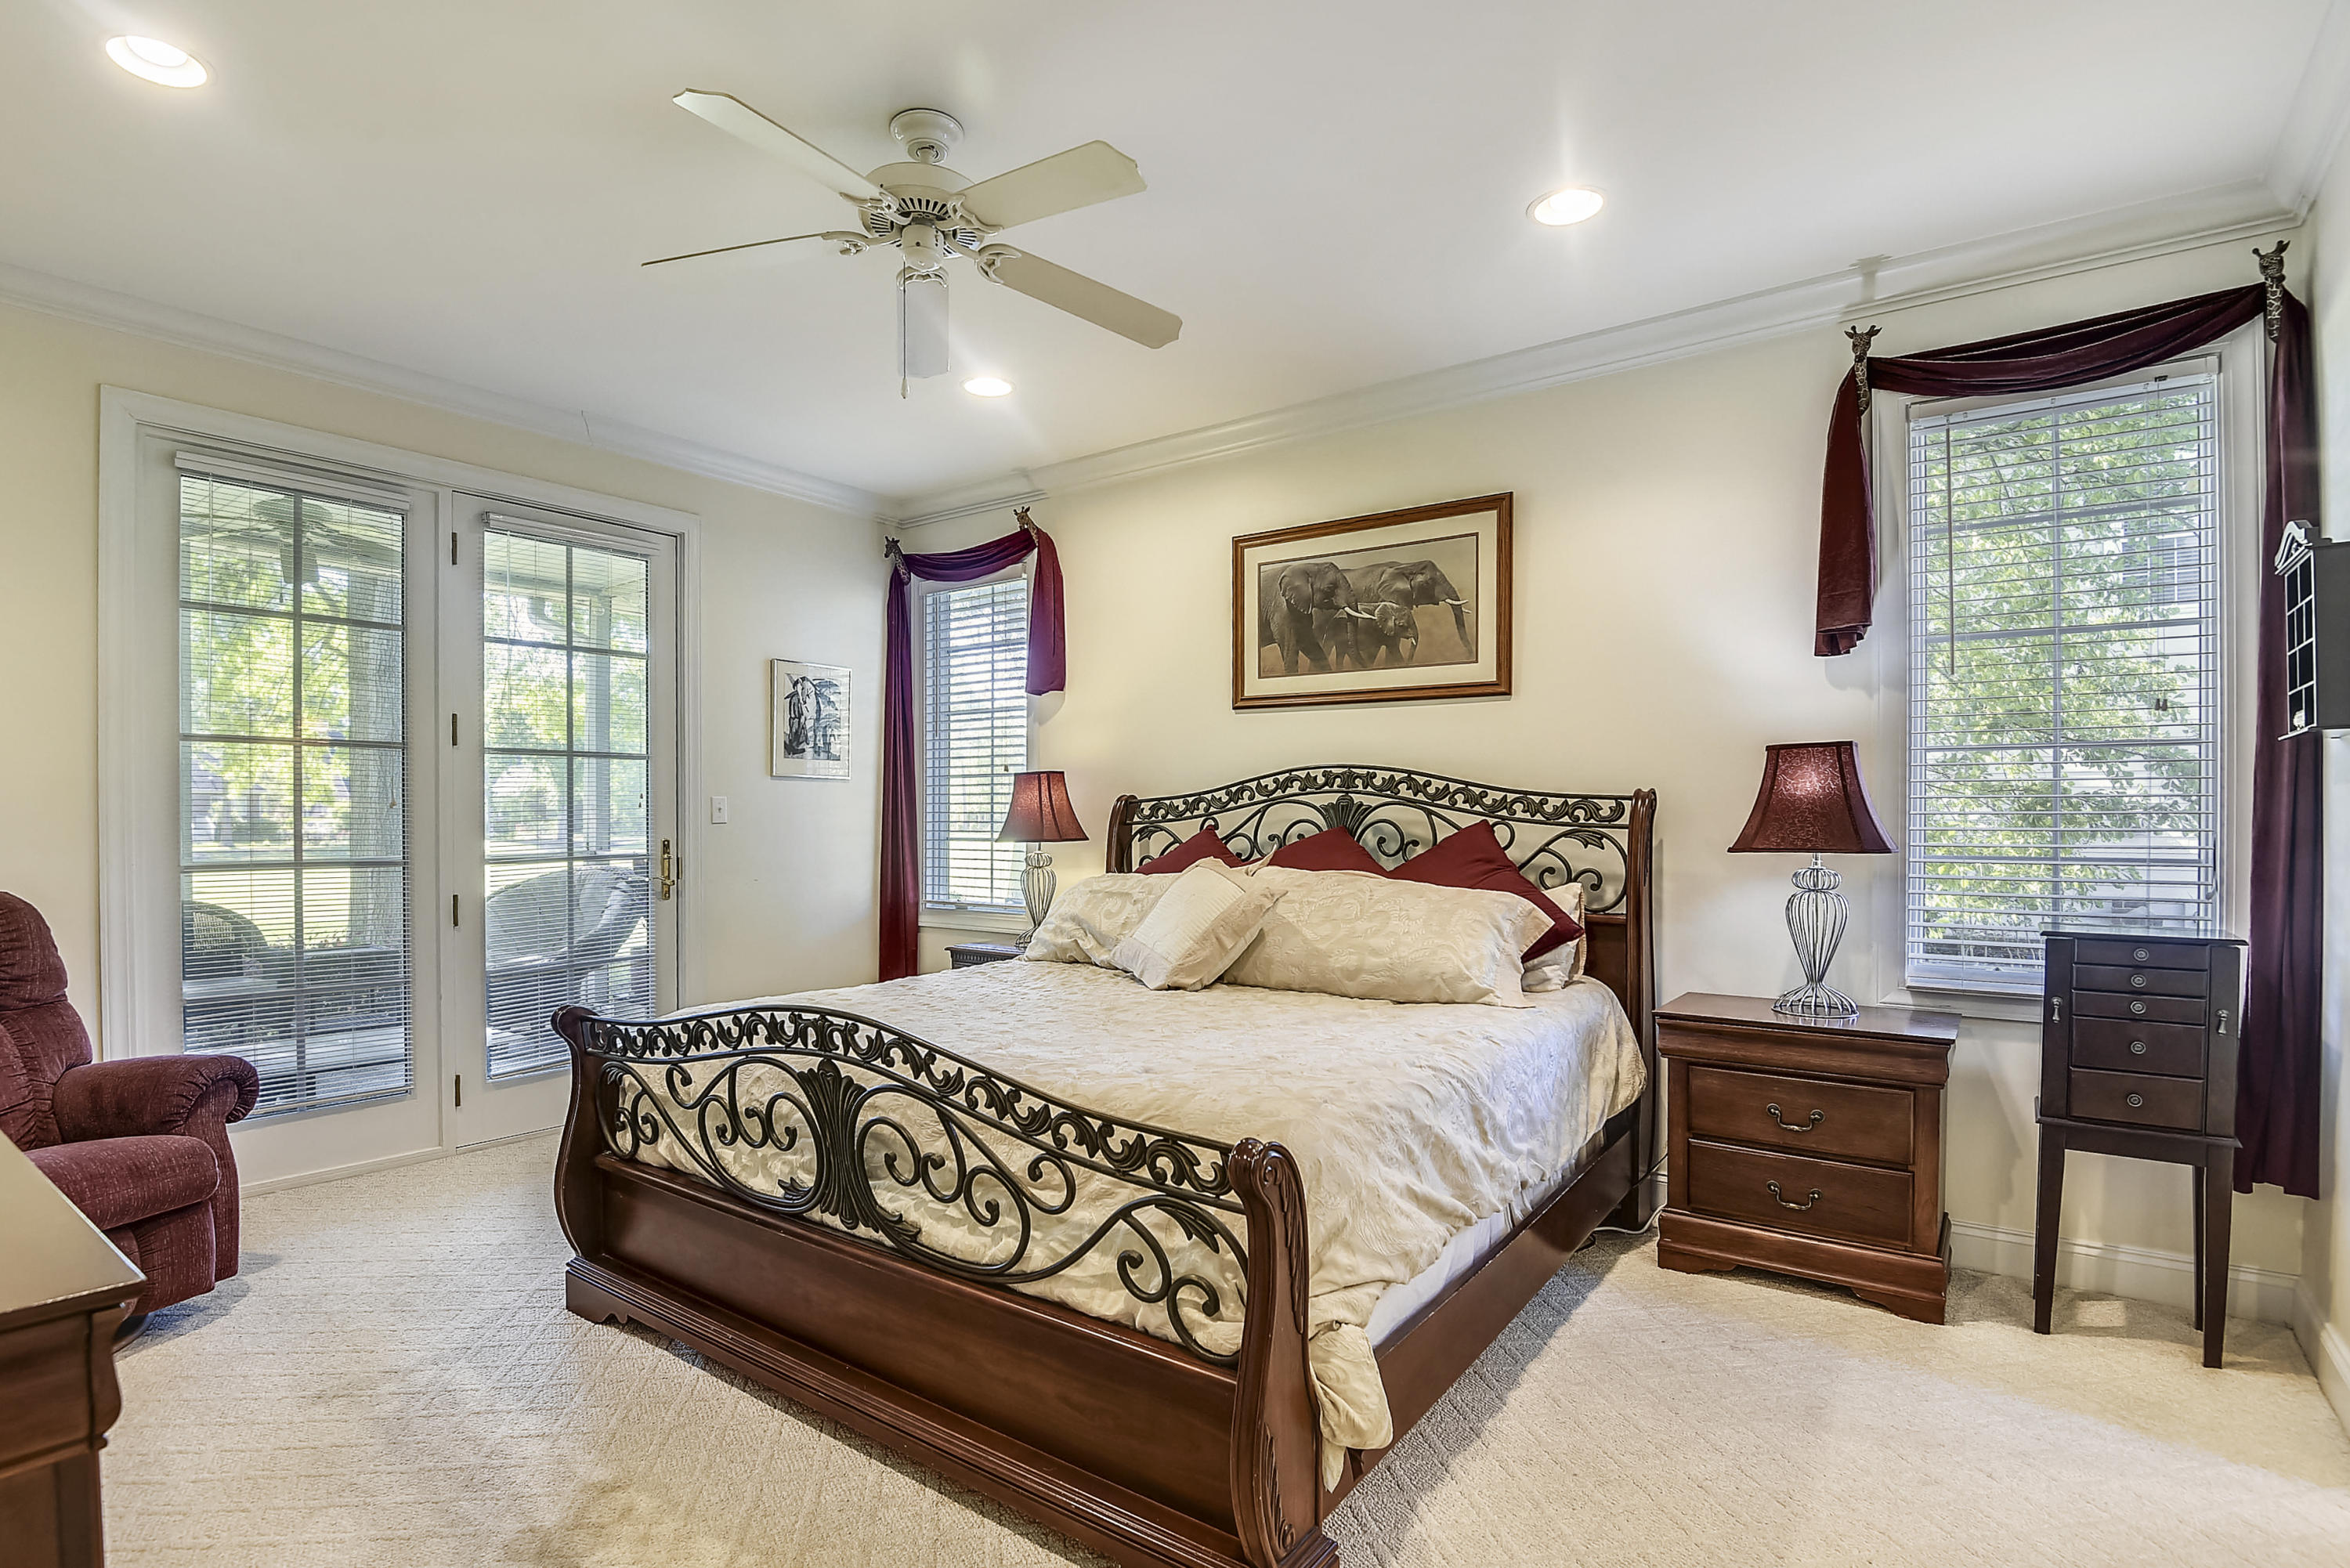 Coosaw Creek Country Club Homes For Sale - 8855 Fairway Woods, North Charleston, SC - 67